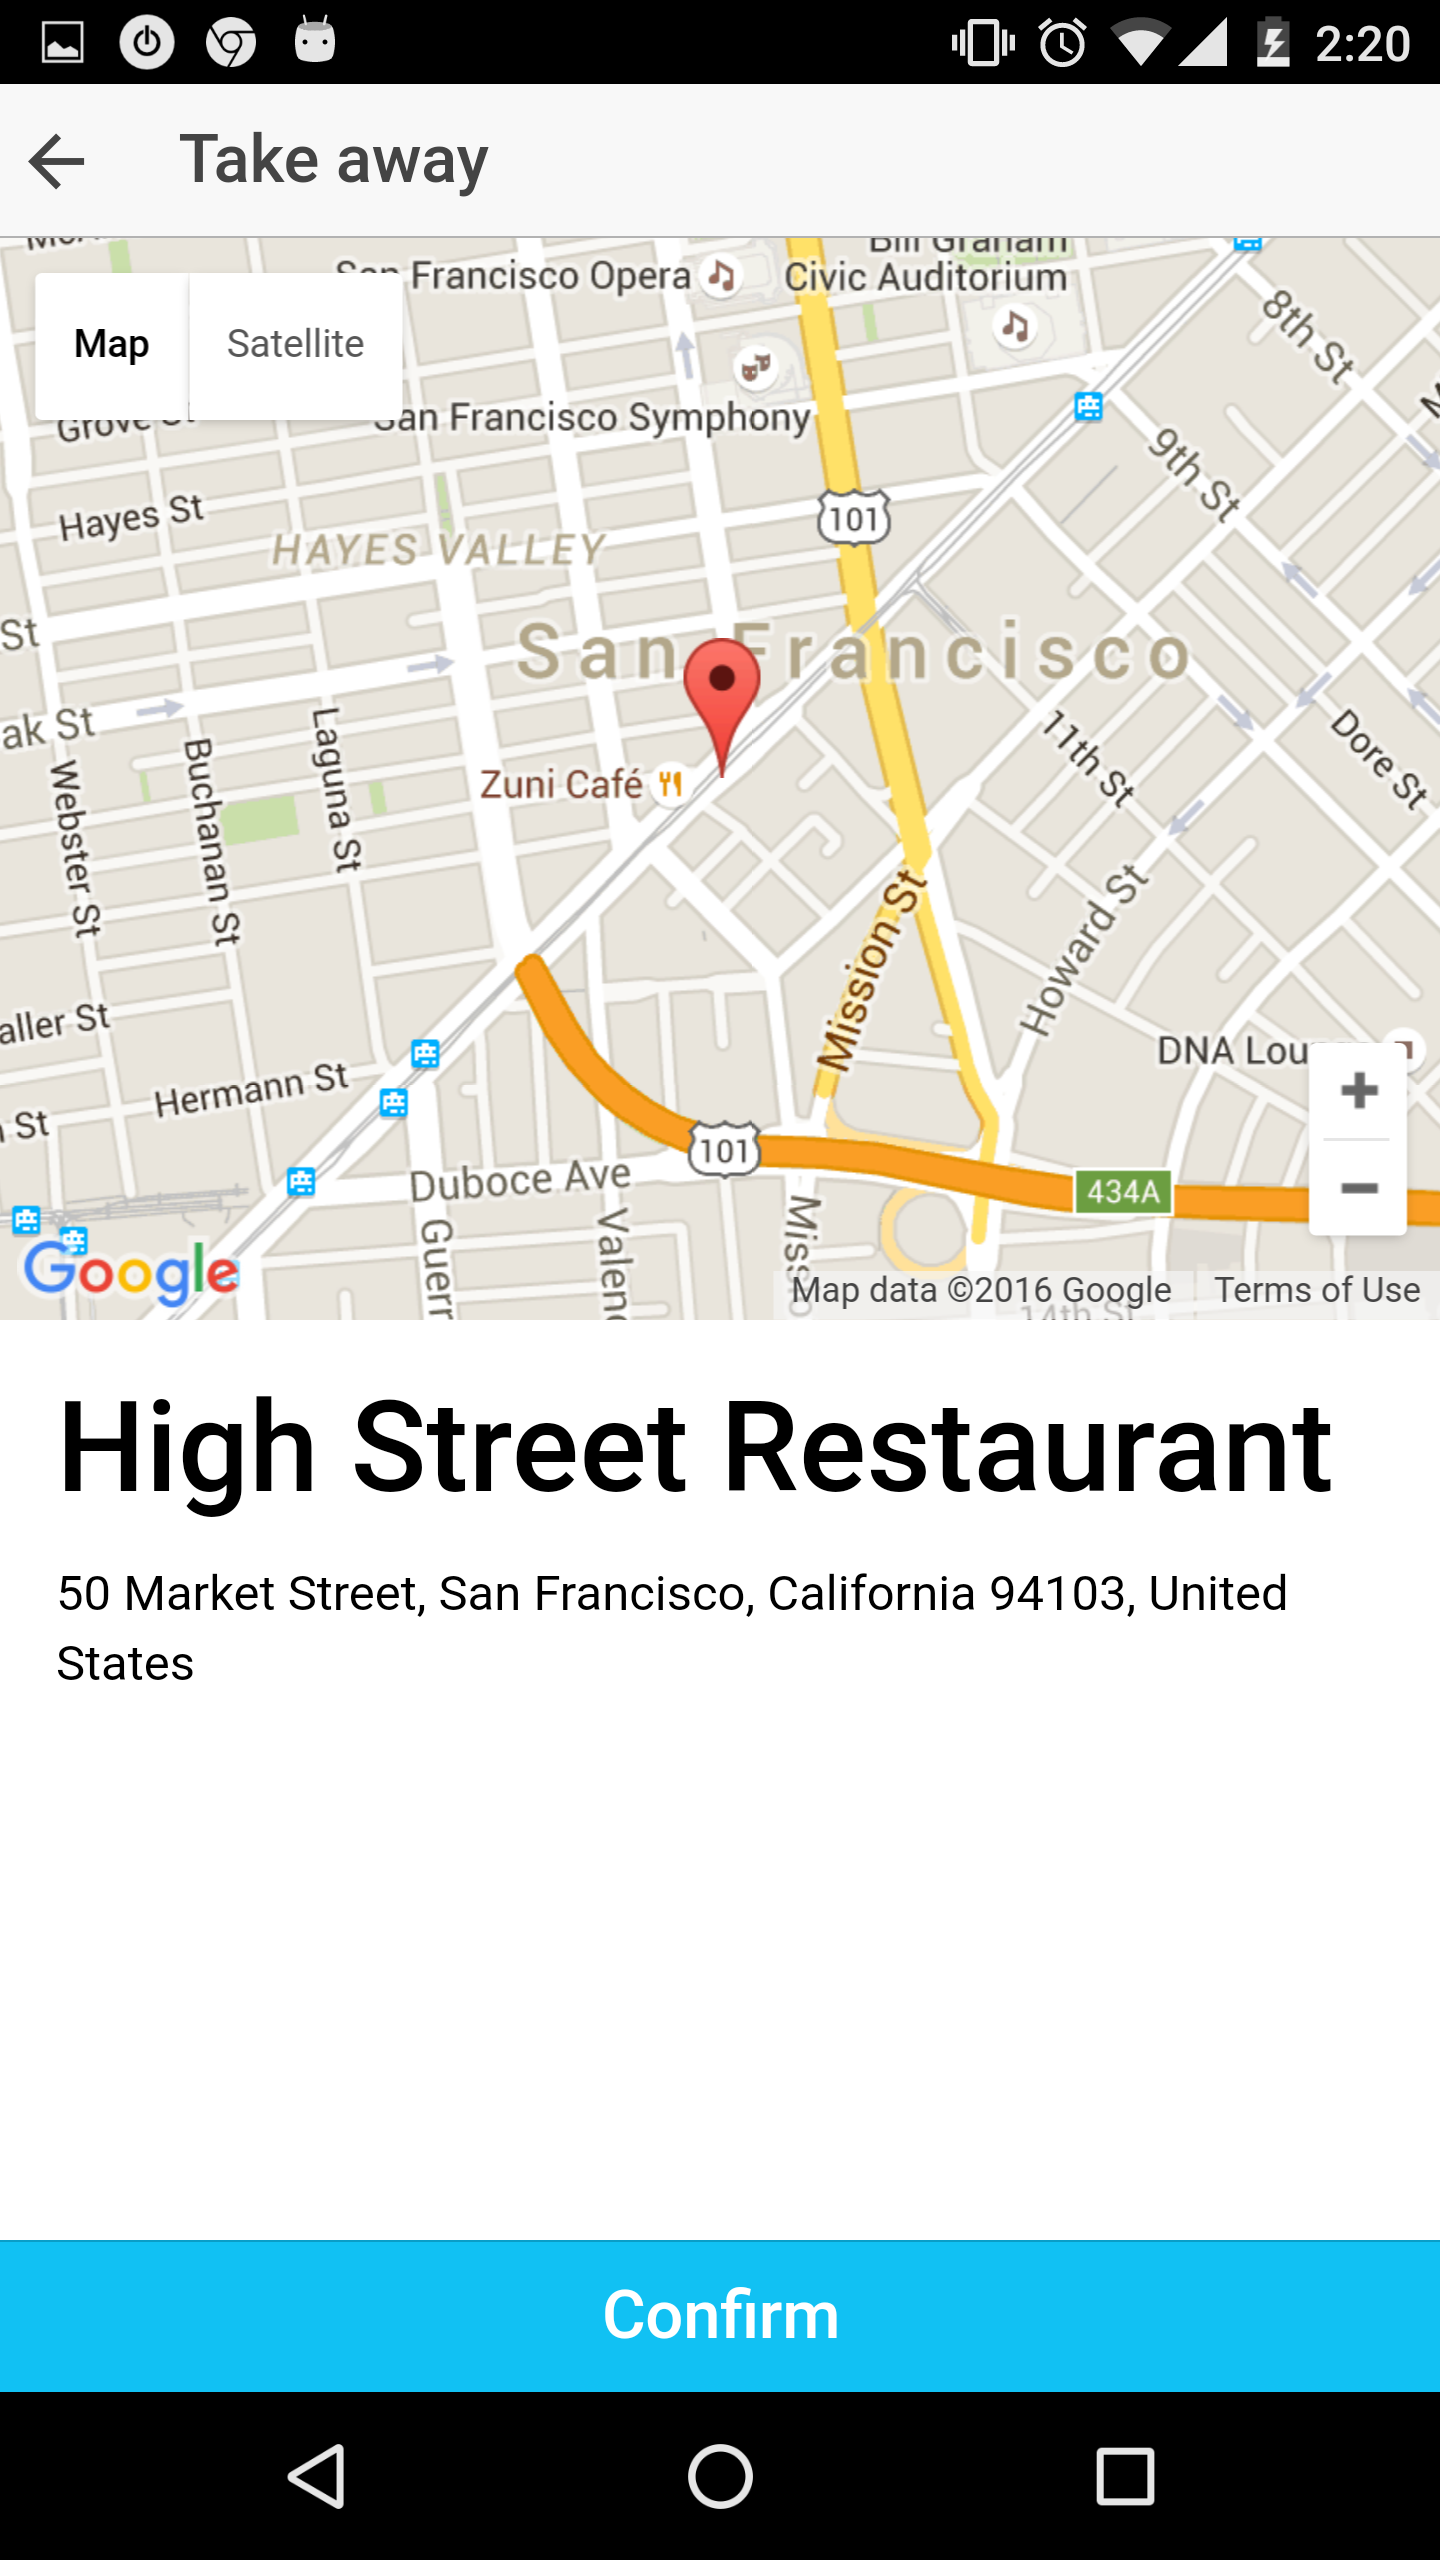 Restaurant Ionic 3 - Full Application with Firebase backend